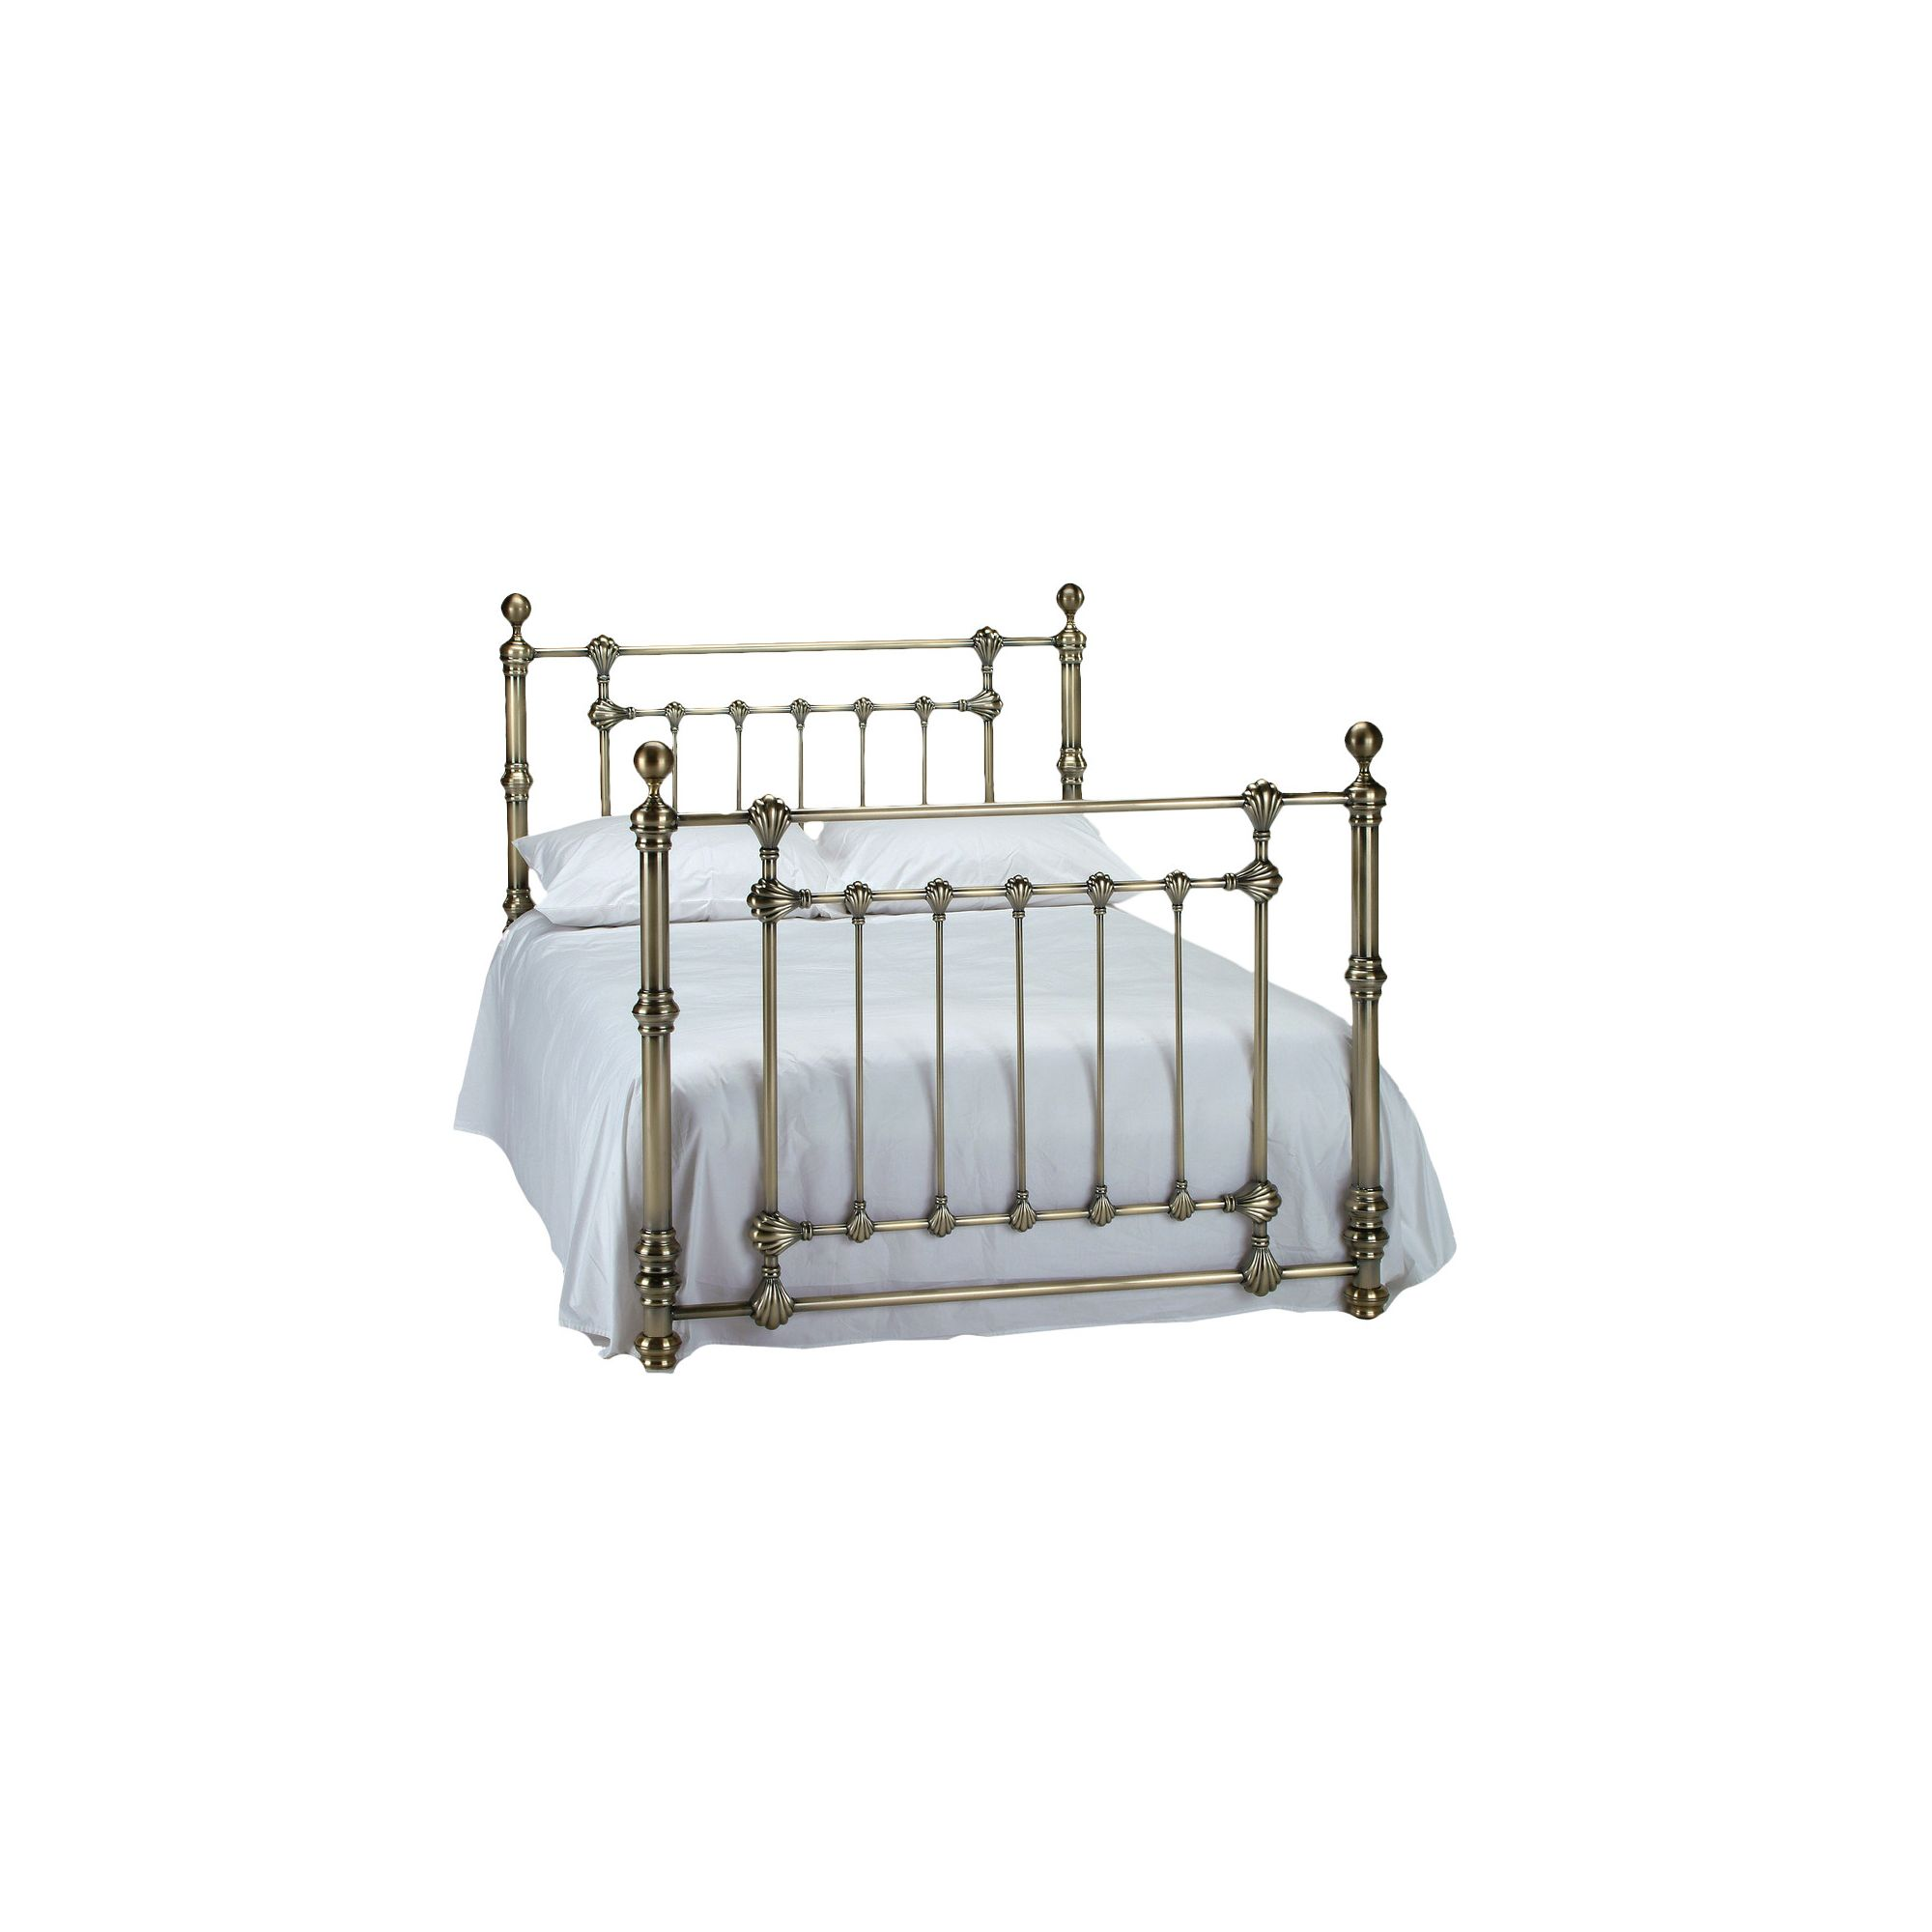 Interiors 2 suit Victoria Bedframe - Double at Tesco Direct